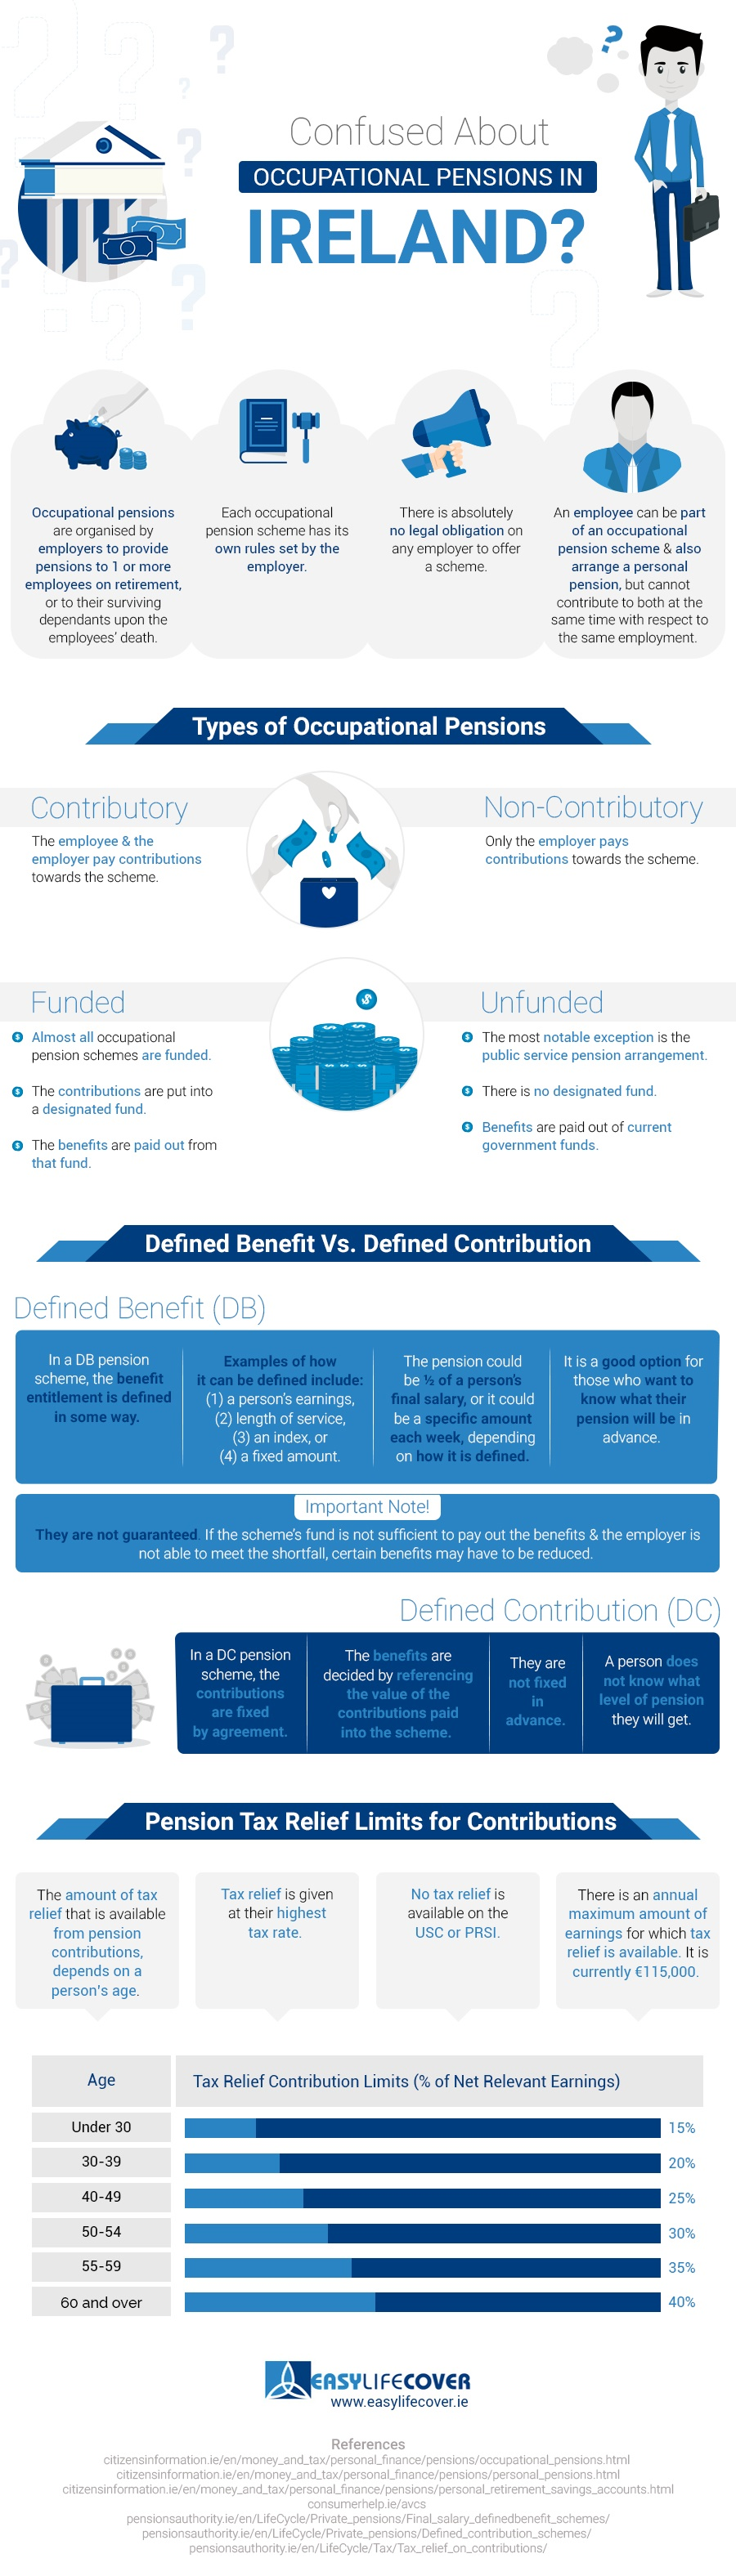 Occupational Pensions in Ireland Infographic